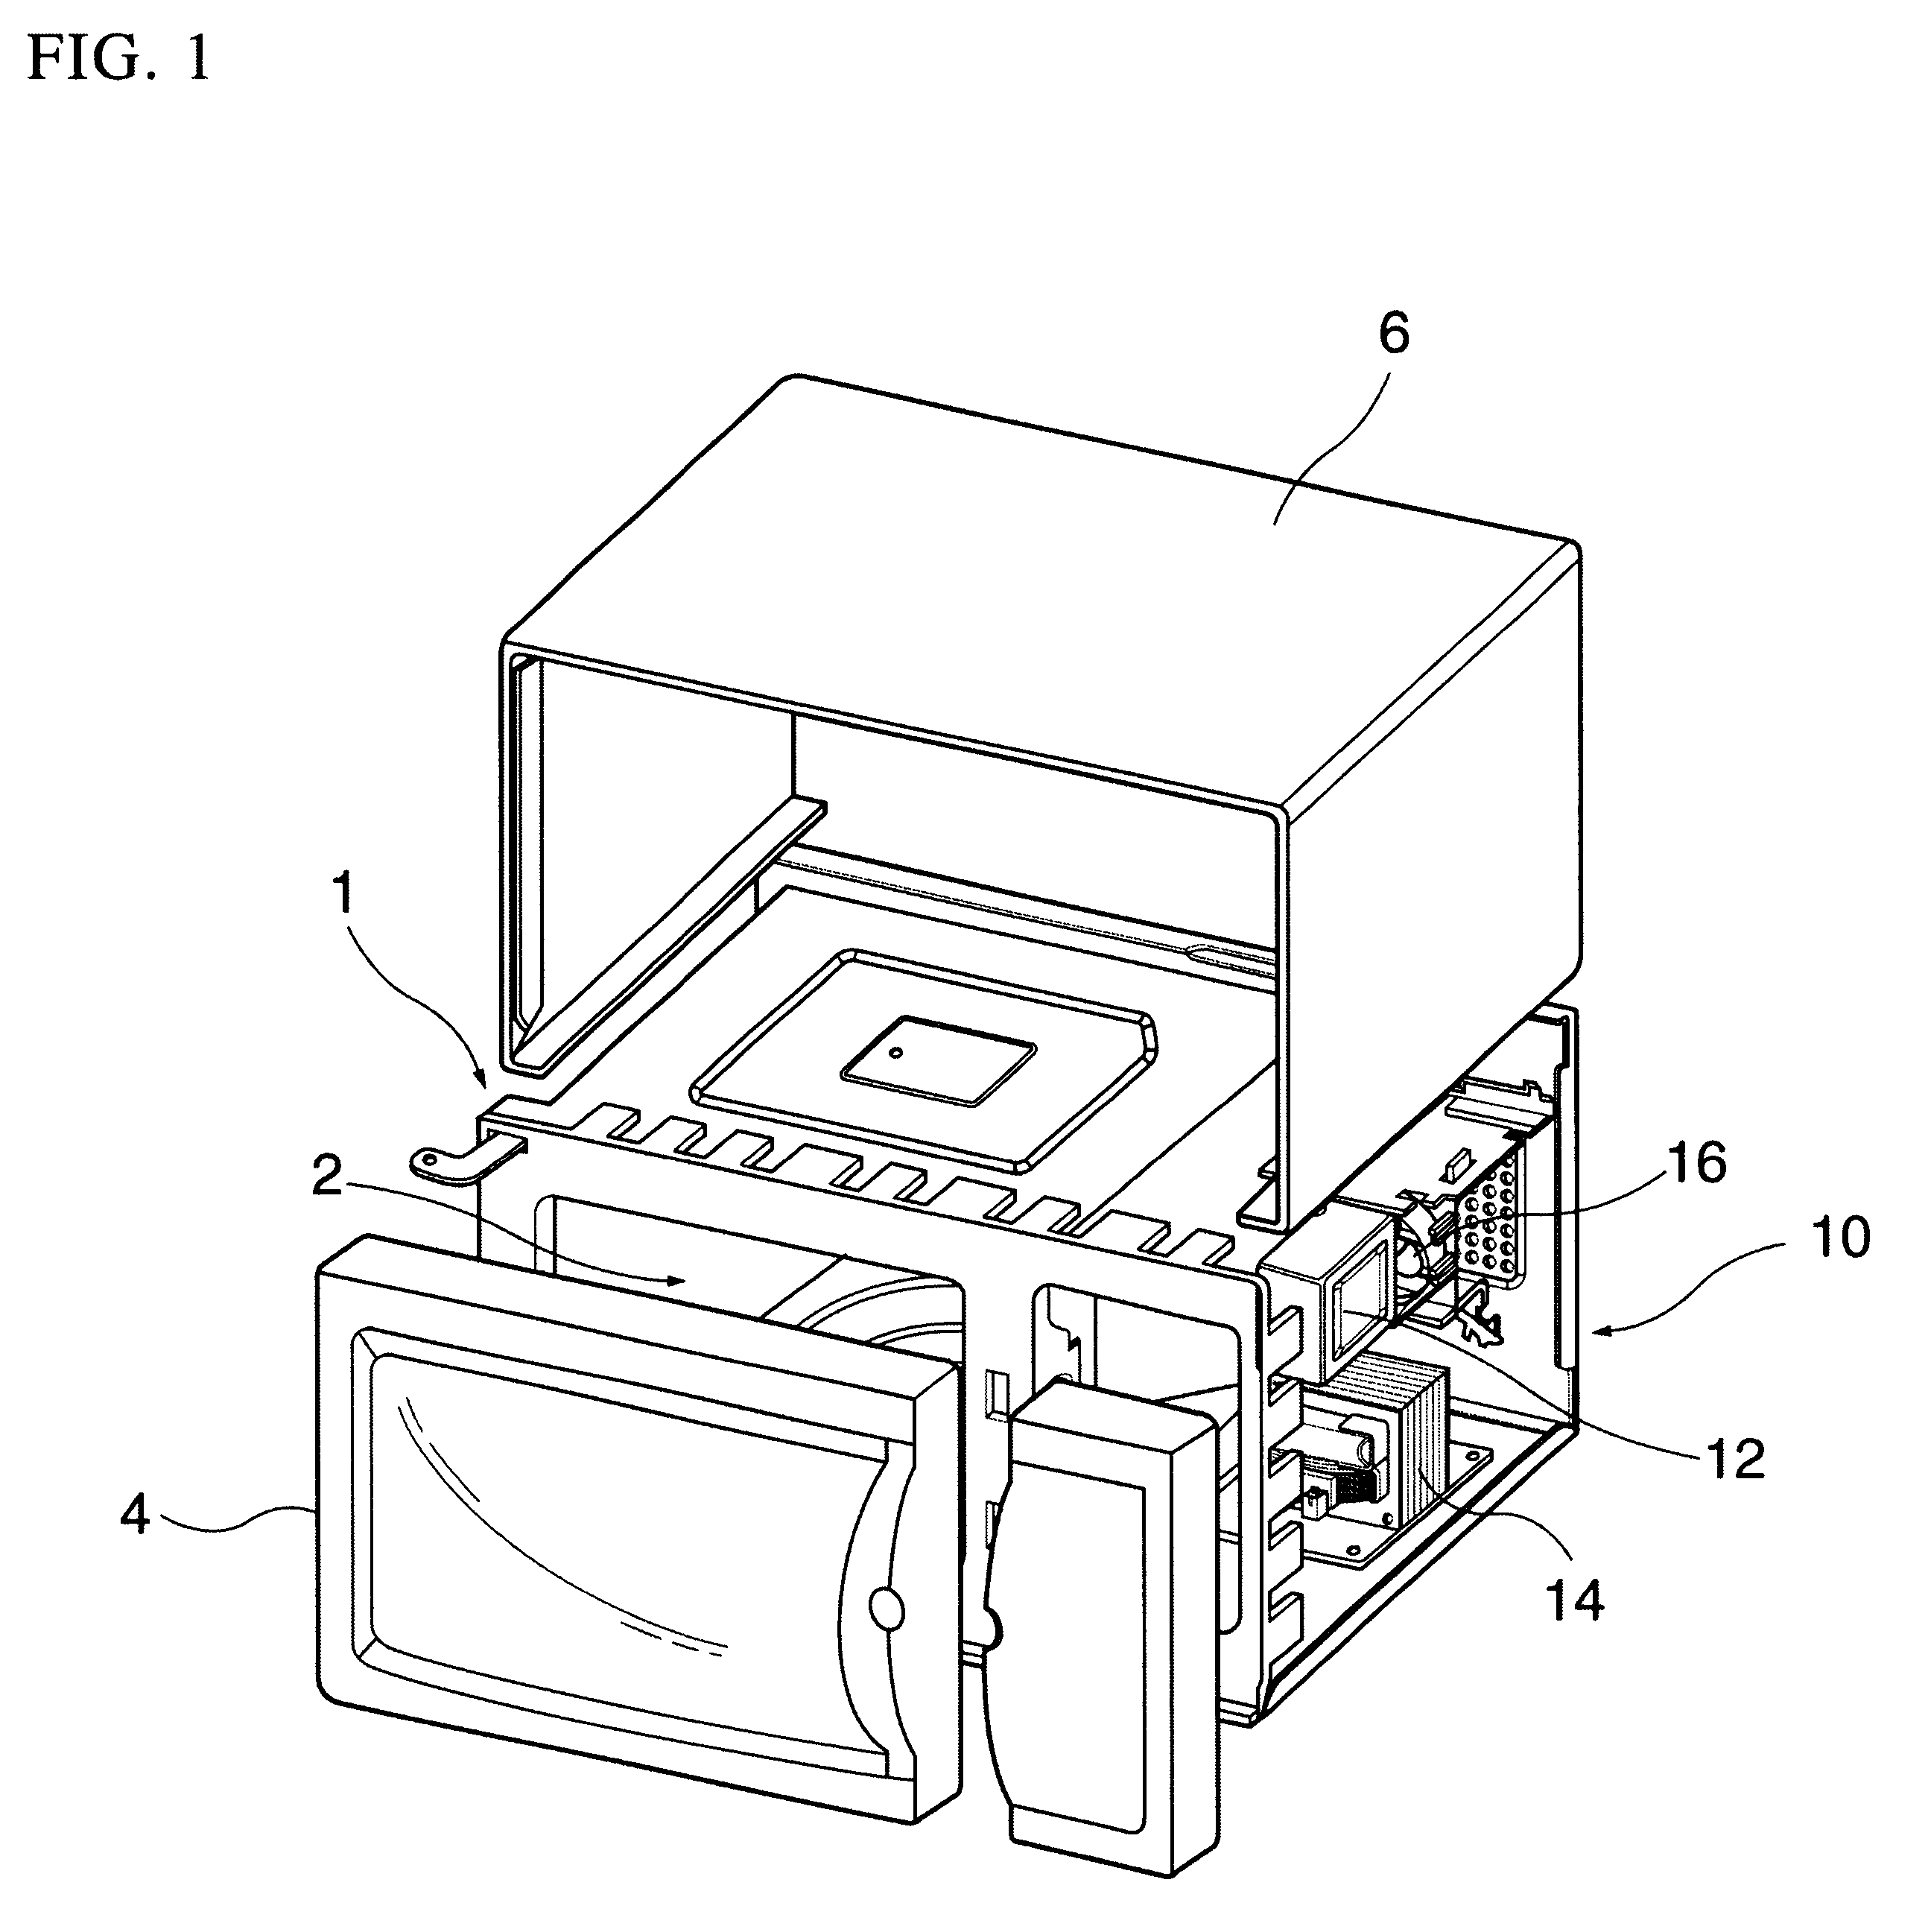 Patent Us6539840 Microwave Oven Having A Toaster